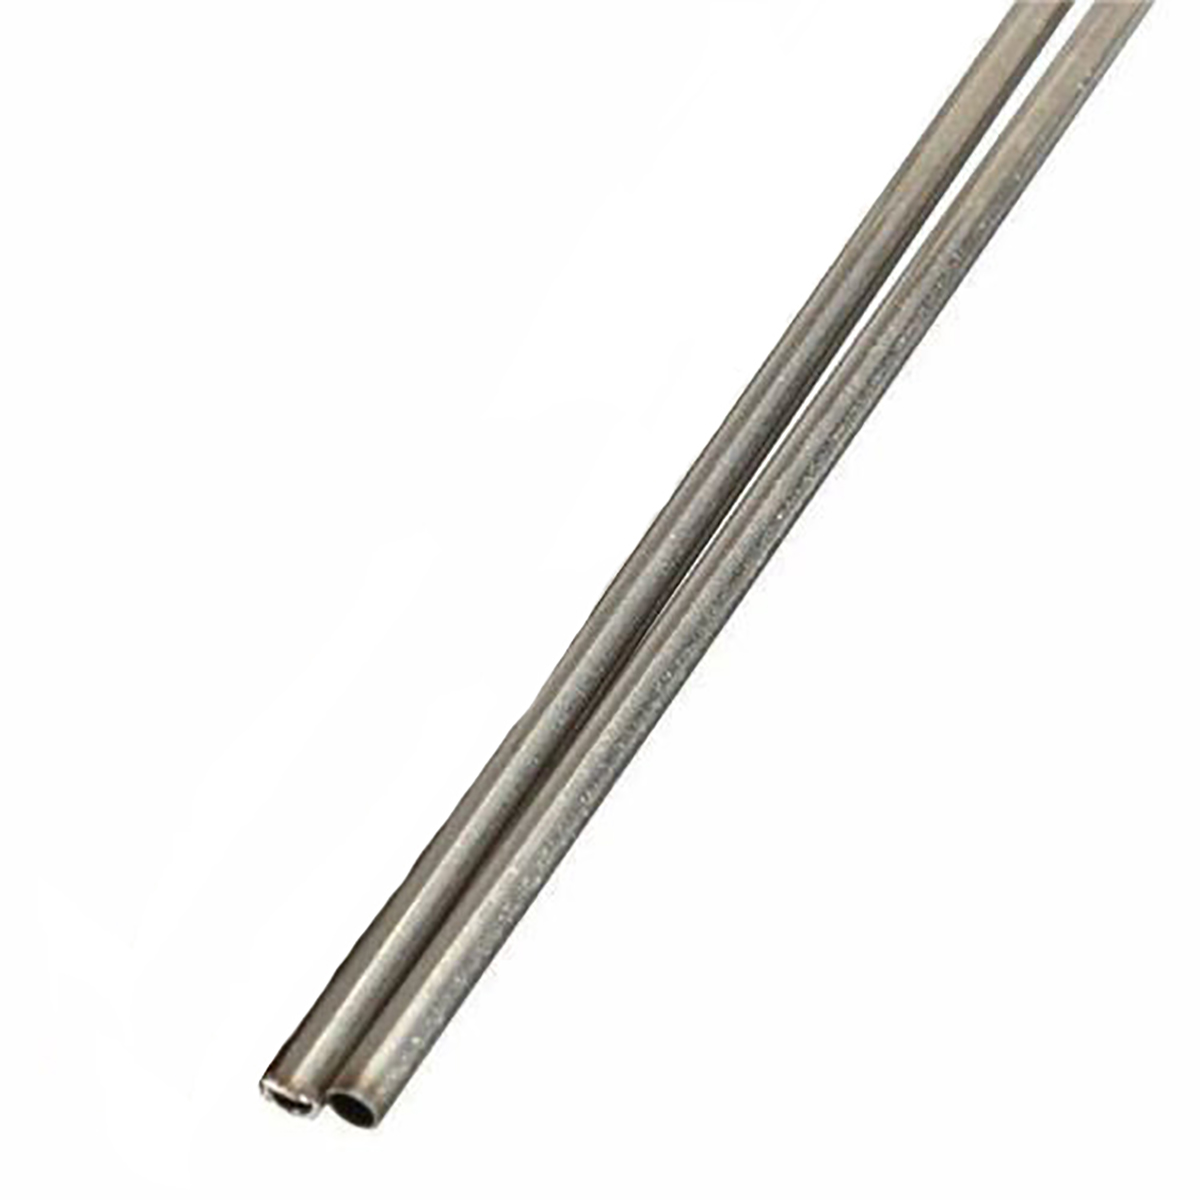 2pcs Corrosion Resistant 304 Stainless Steel Capillary Tube 2mm OD 1.6mm ID 500mm Length Silver